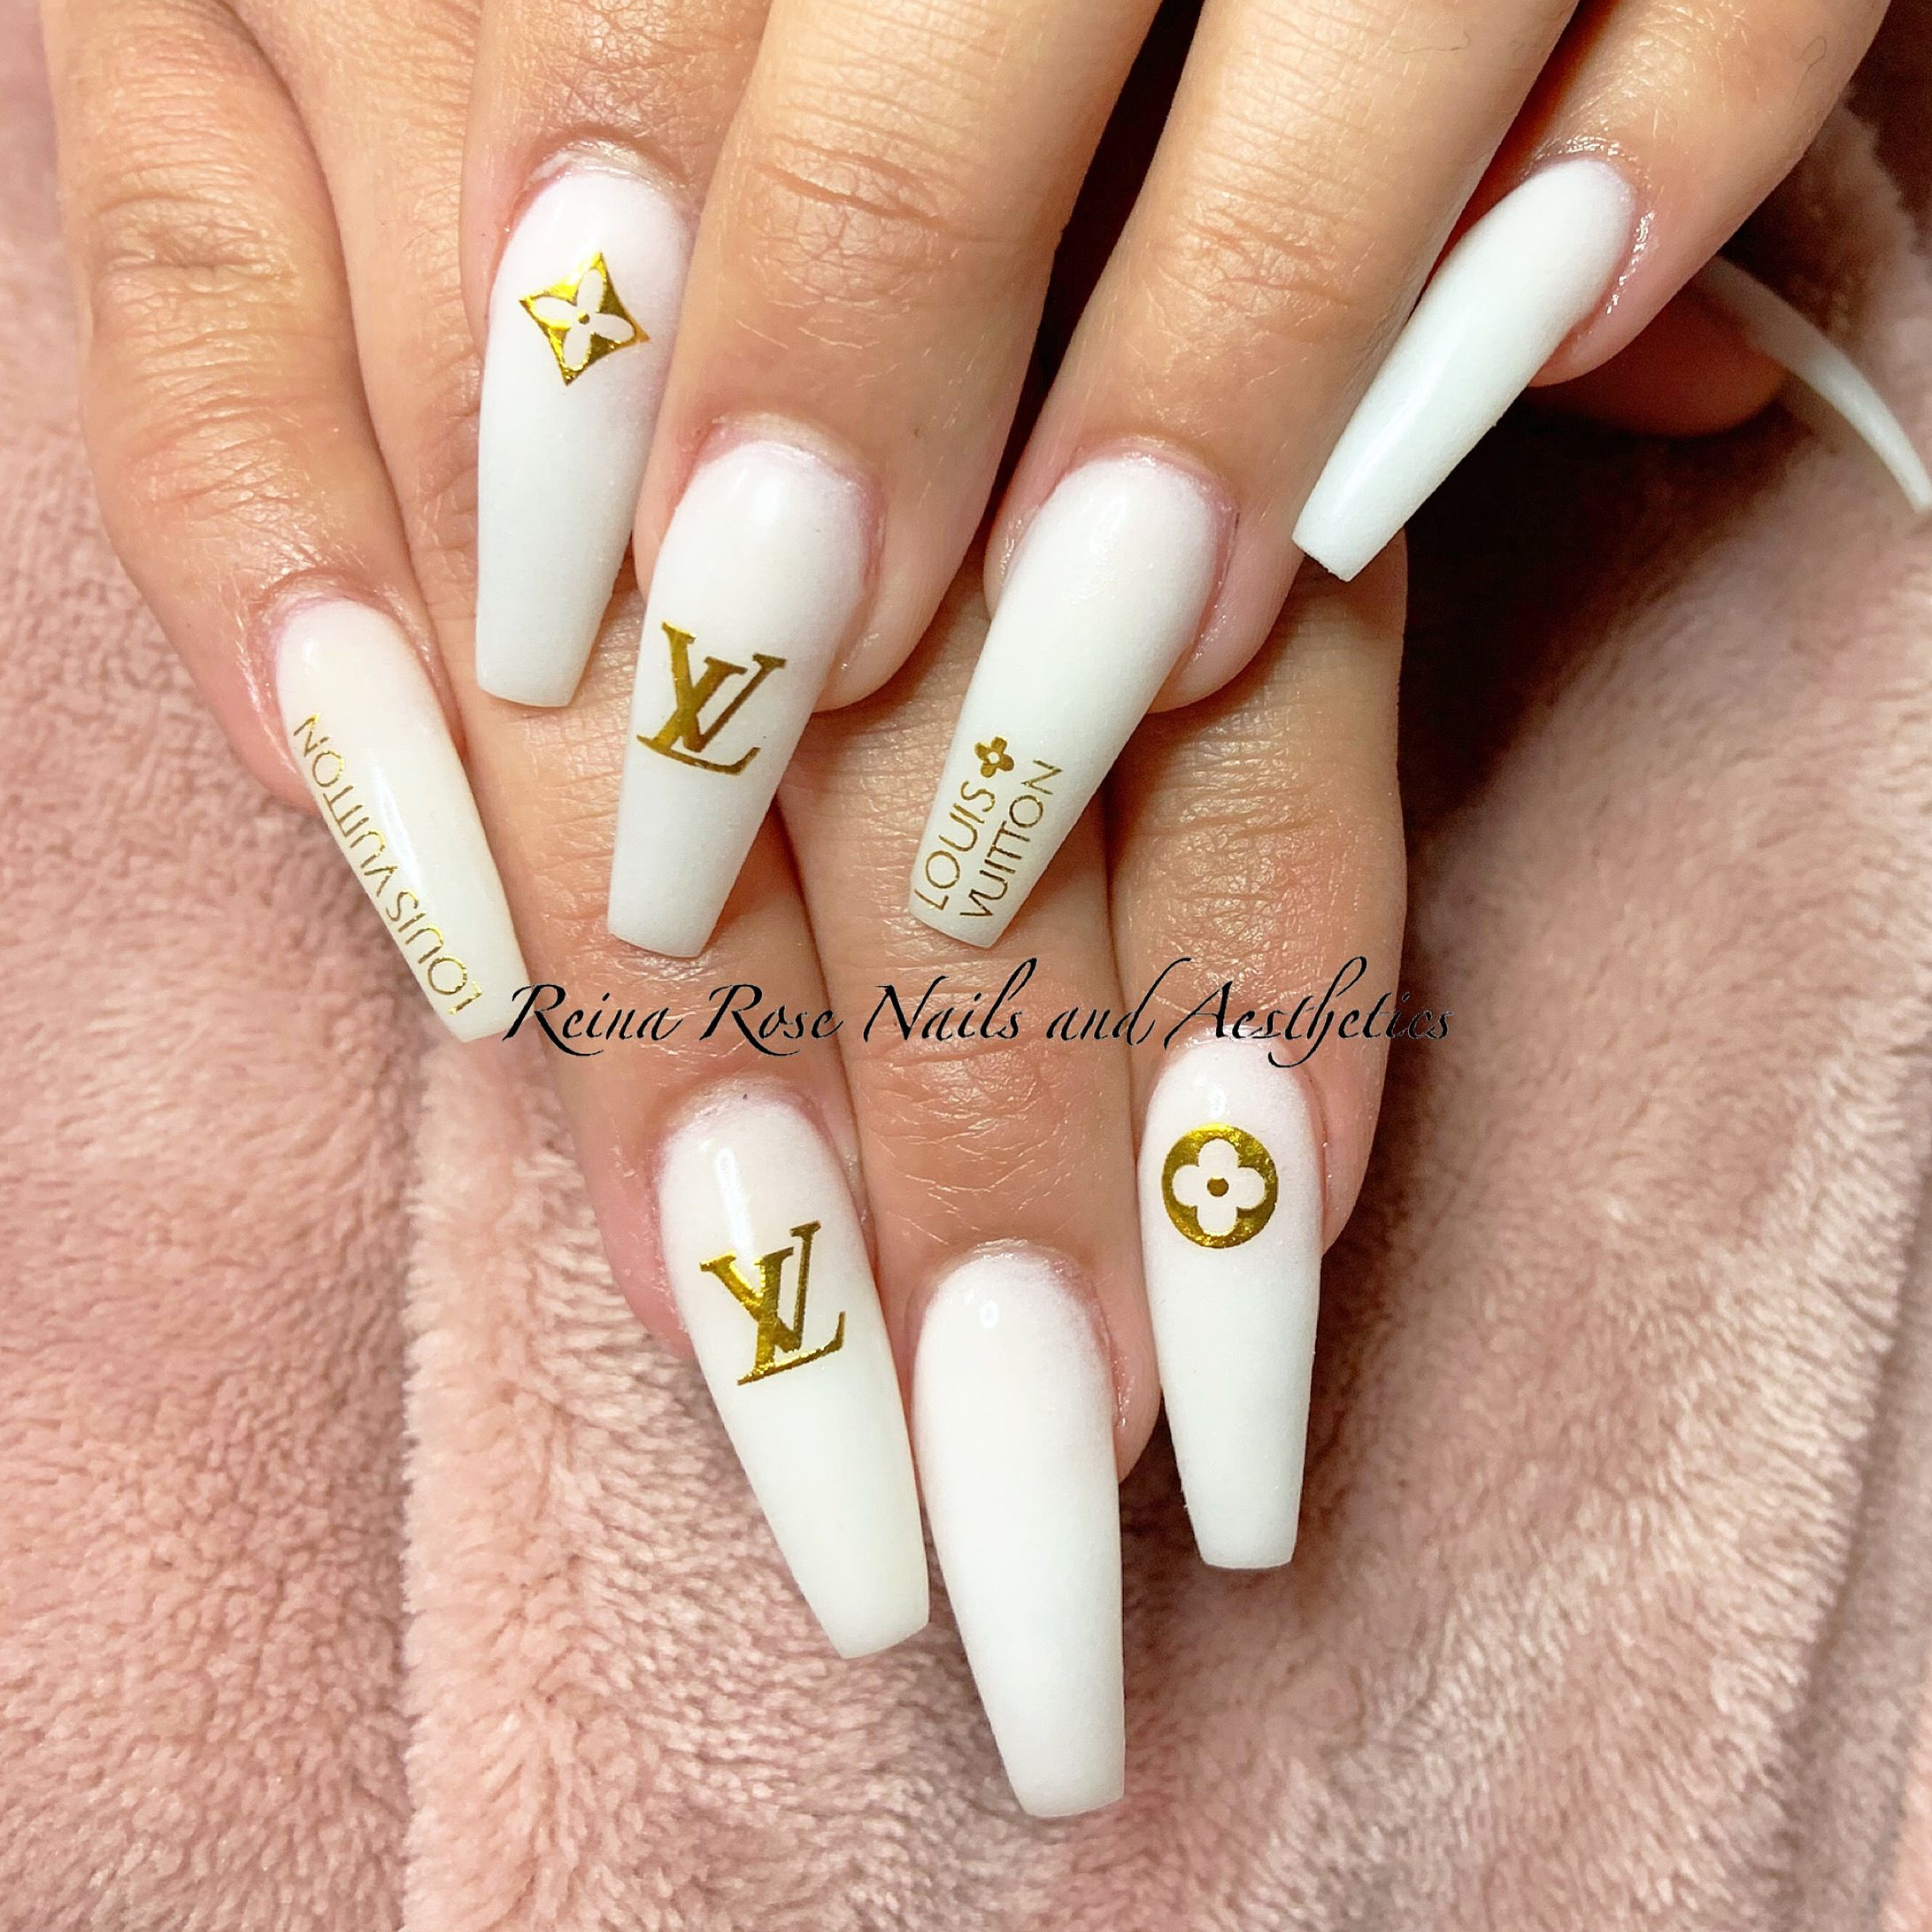 Milky White Acrylic In 2020 Chanel Nails Design Chanel Nails Best Acrylic Nails